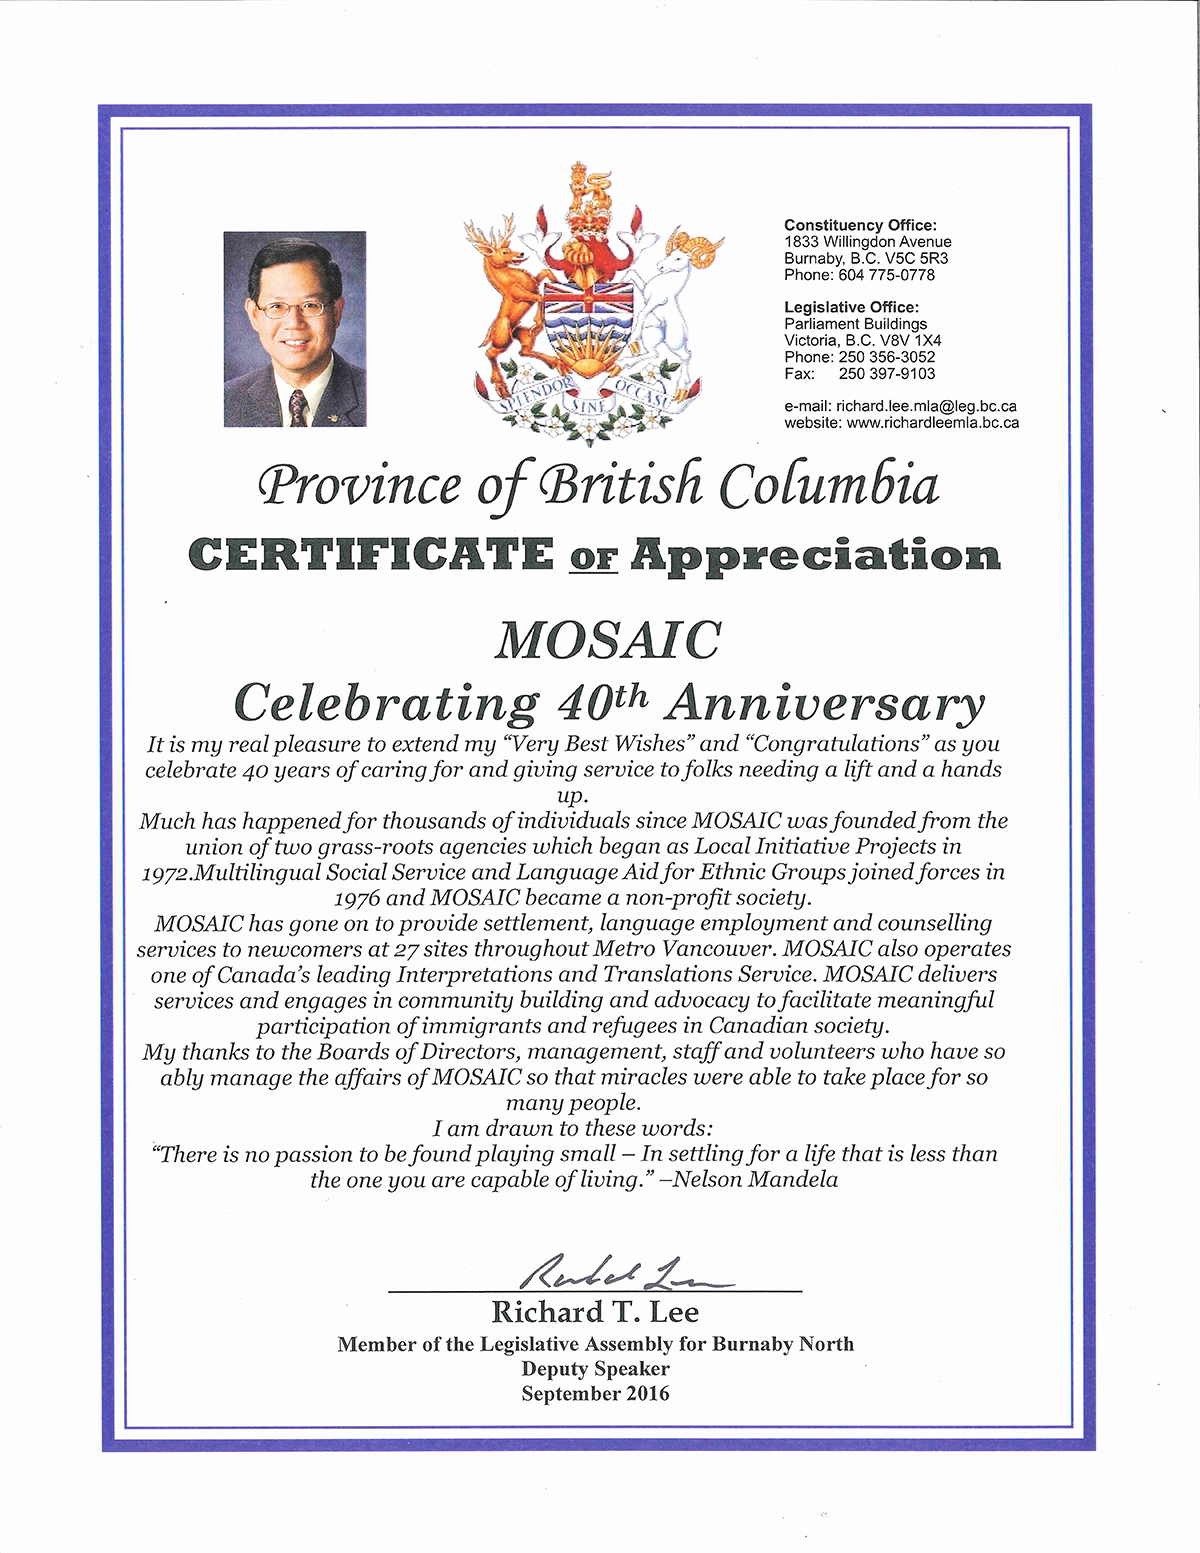 Certificate of appreciation mosaic our thanks to mr richard lee for his support recognition on behalf of the province of british columbia yelopaper Choice Image